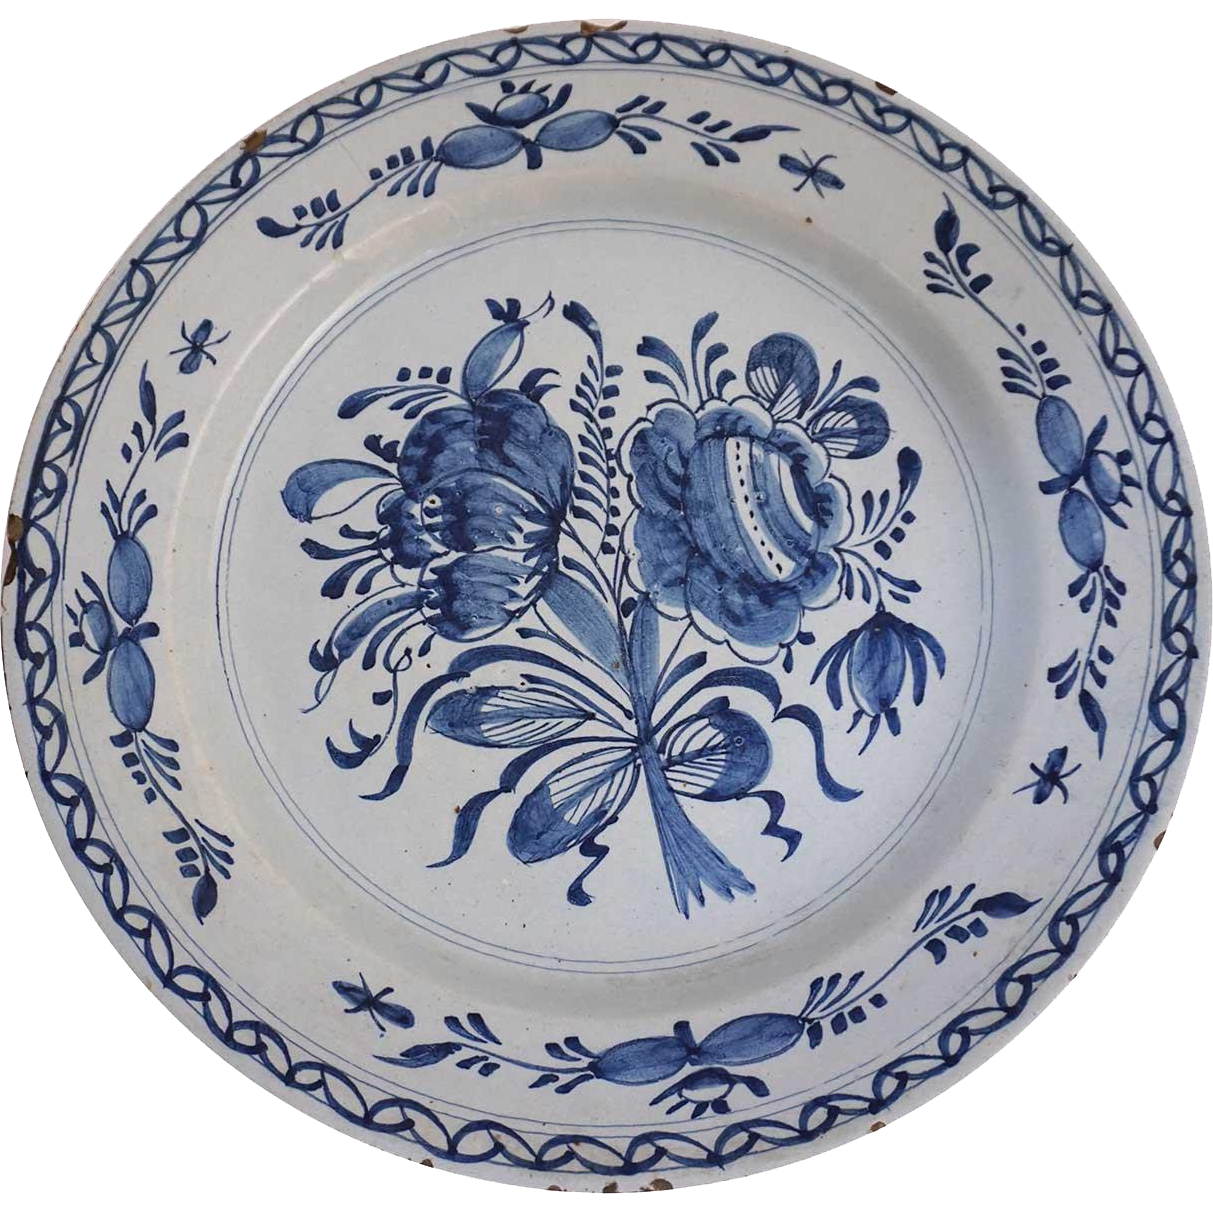 Dutch Delft Blue And White Faience Charger Plate Delft Blue Pottery Blue And White